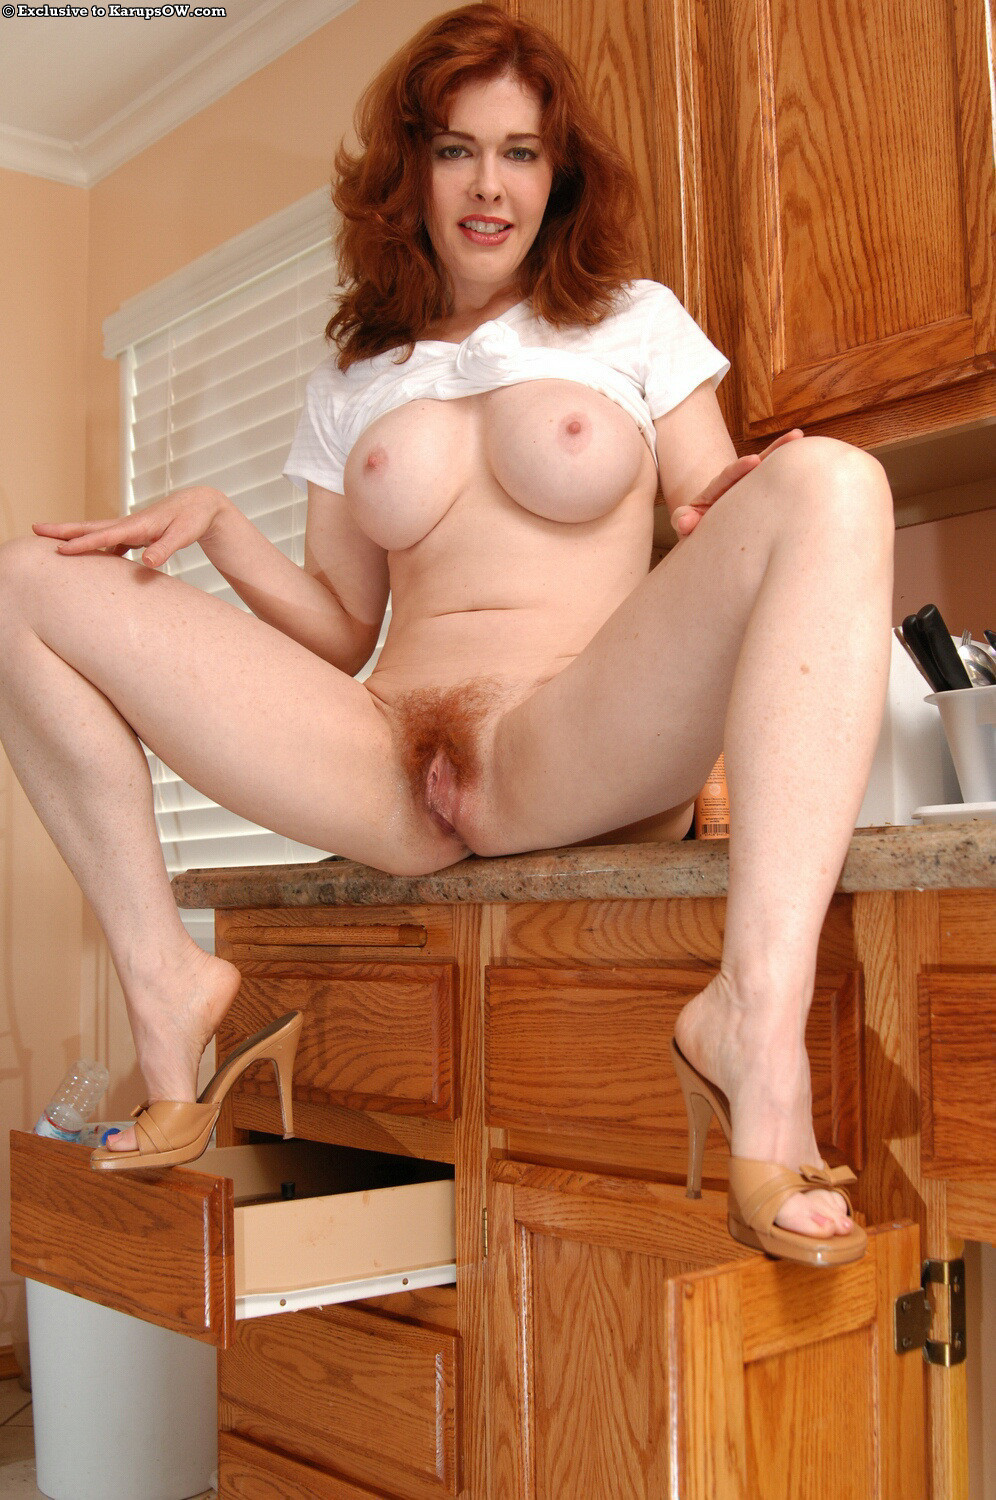 mature-fuck-sluts:  Mature Fuckers - MILF's, Matures and Grannies - Also on Twitter!